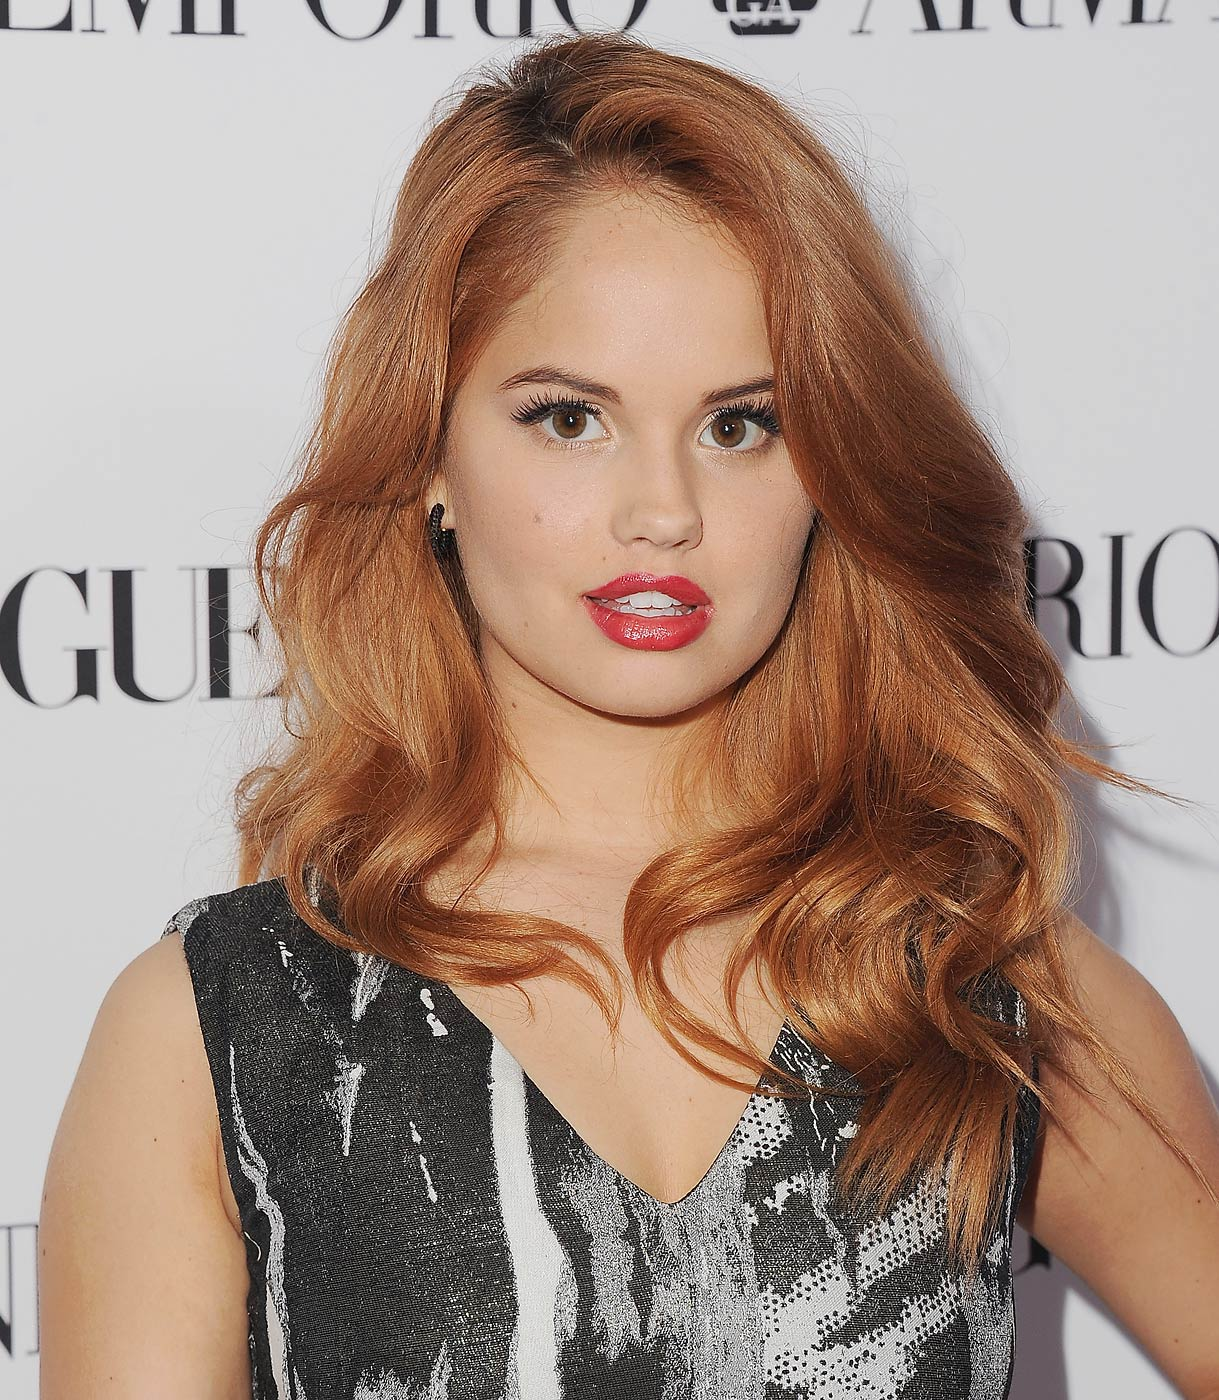 Debby Ryan arrives at the Teen Vogue Young Hollywood Party on September 26, 2014 in Los Angeles, Calif.